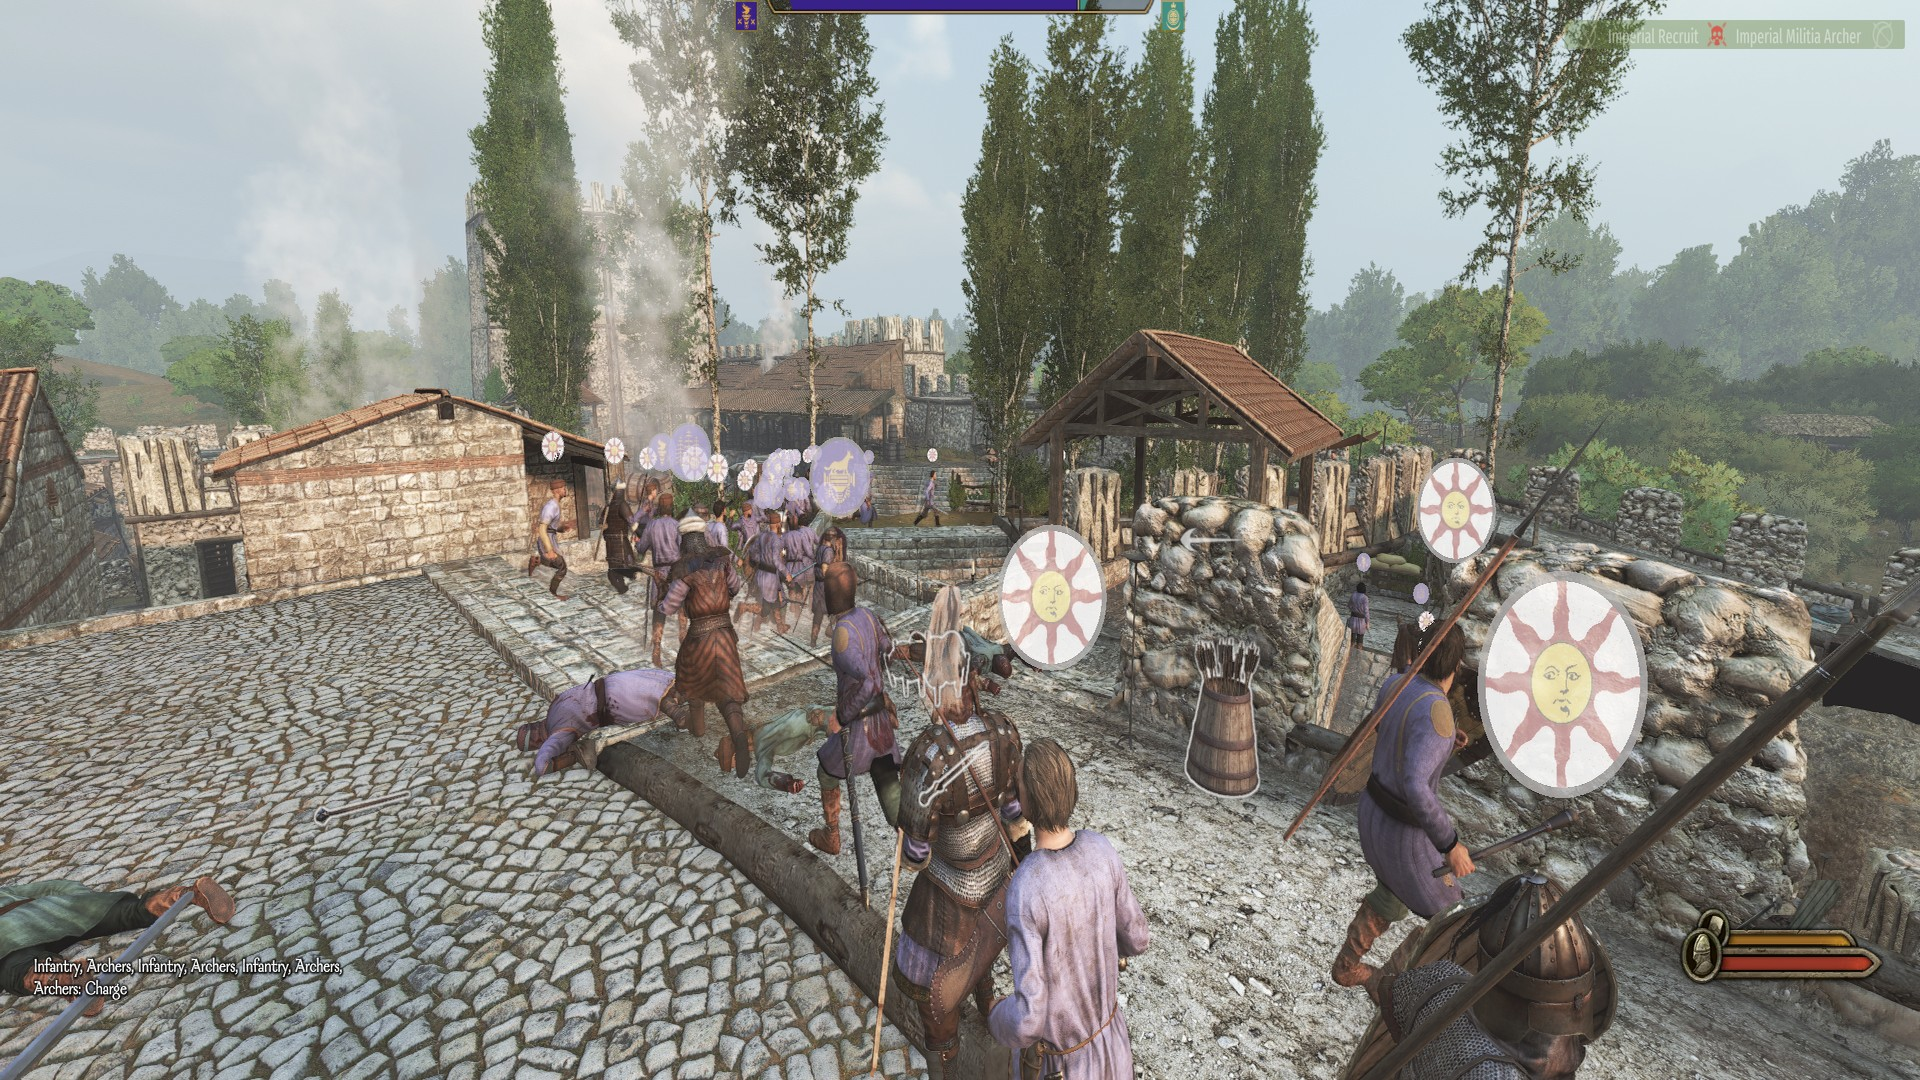 Mount Blade Ii Bannerlord Preview Let S Talk About Video Games